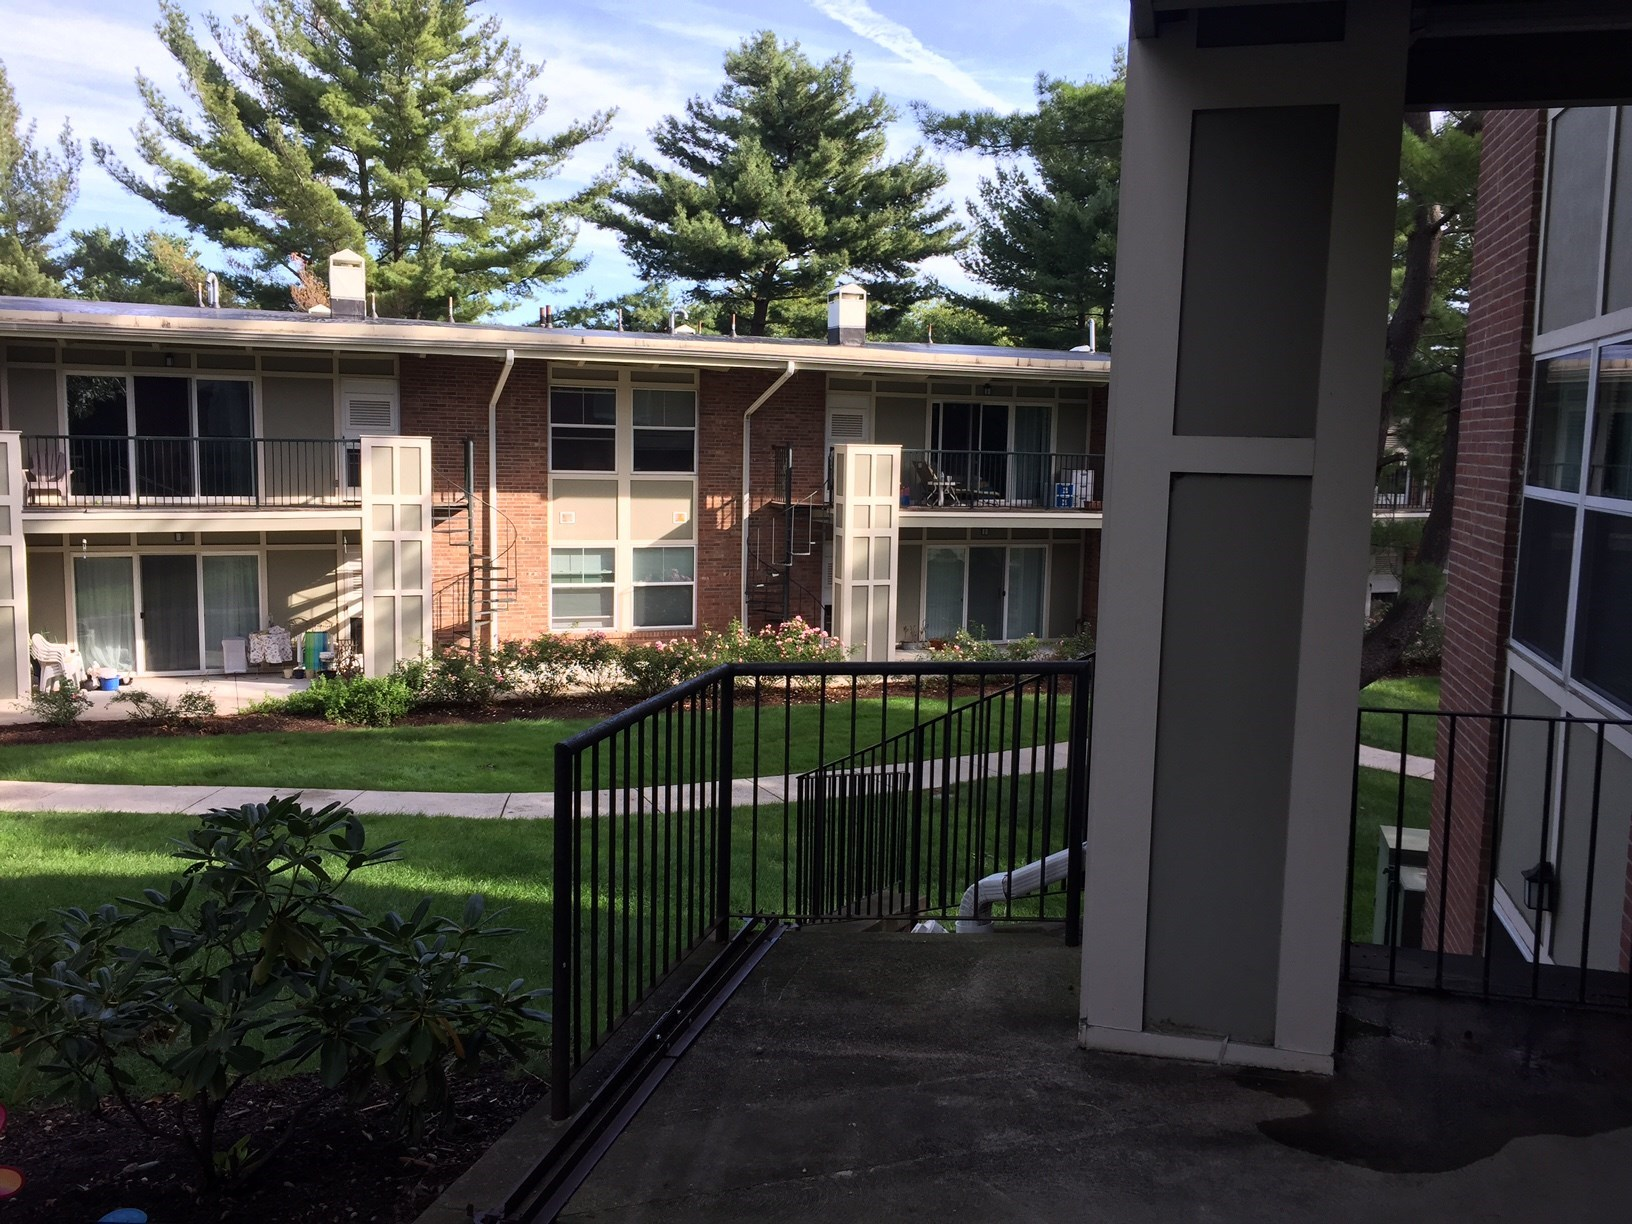 Shared Room Is Available In A 2bhk Apartment In Eaves North Quincy 3 Minutes Walk From North